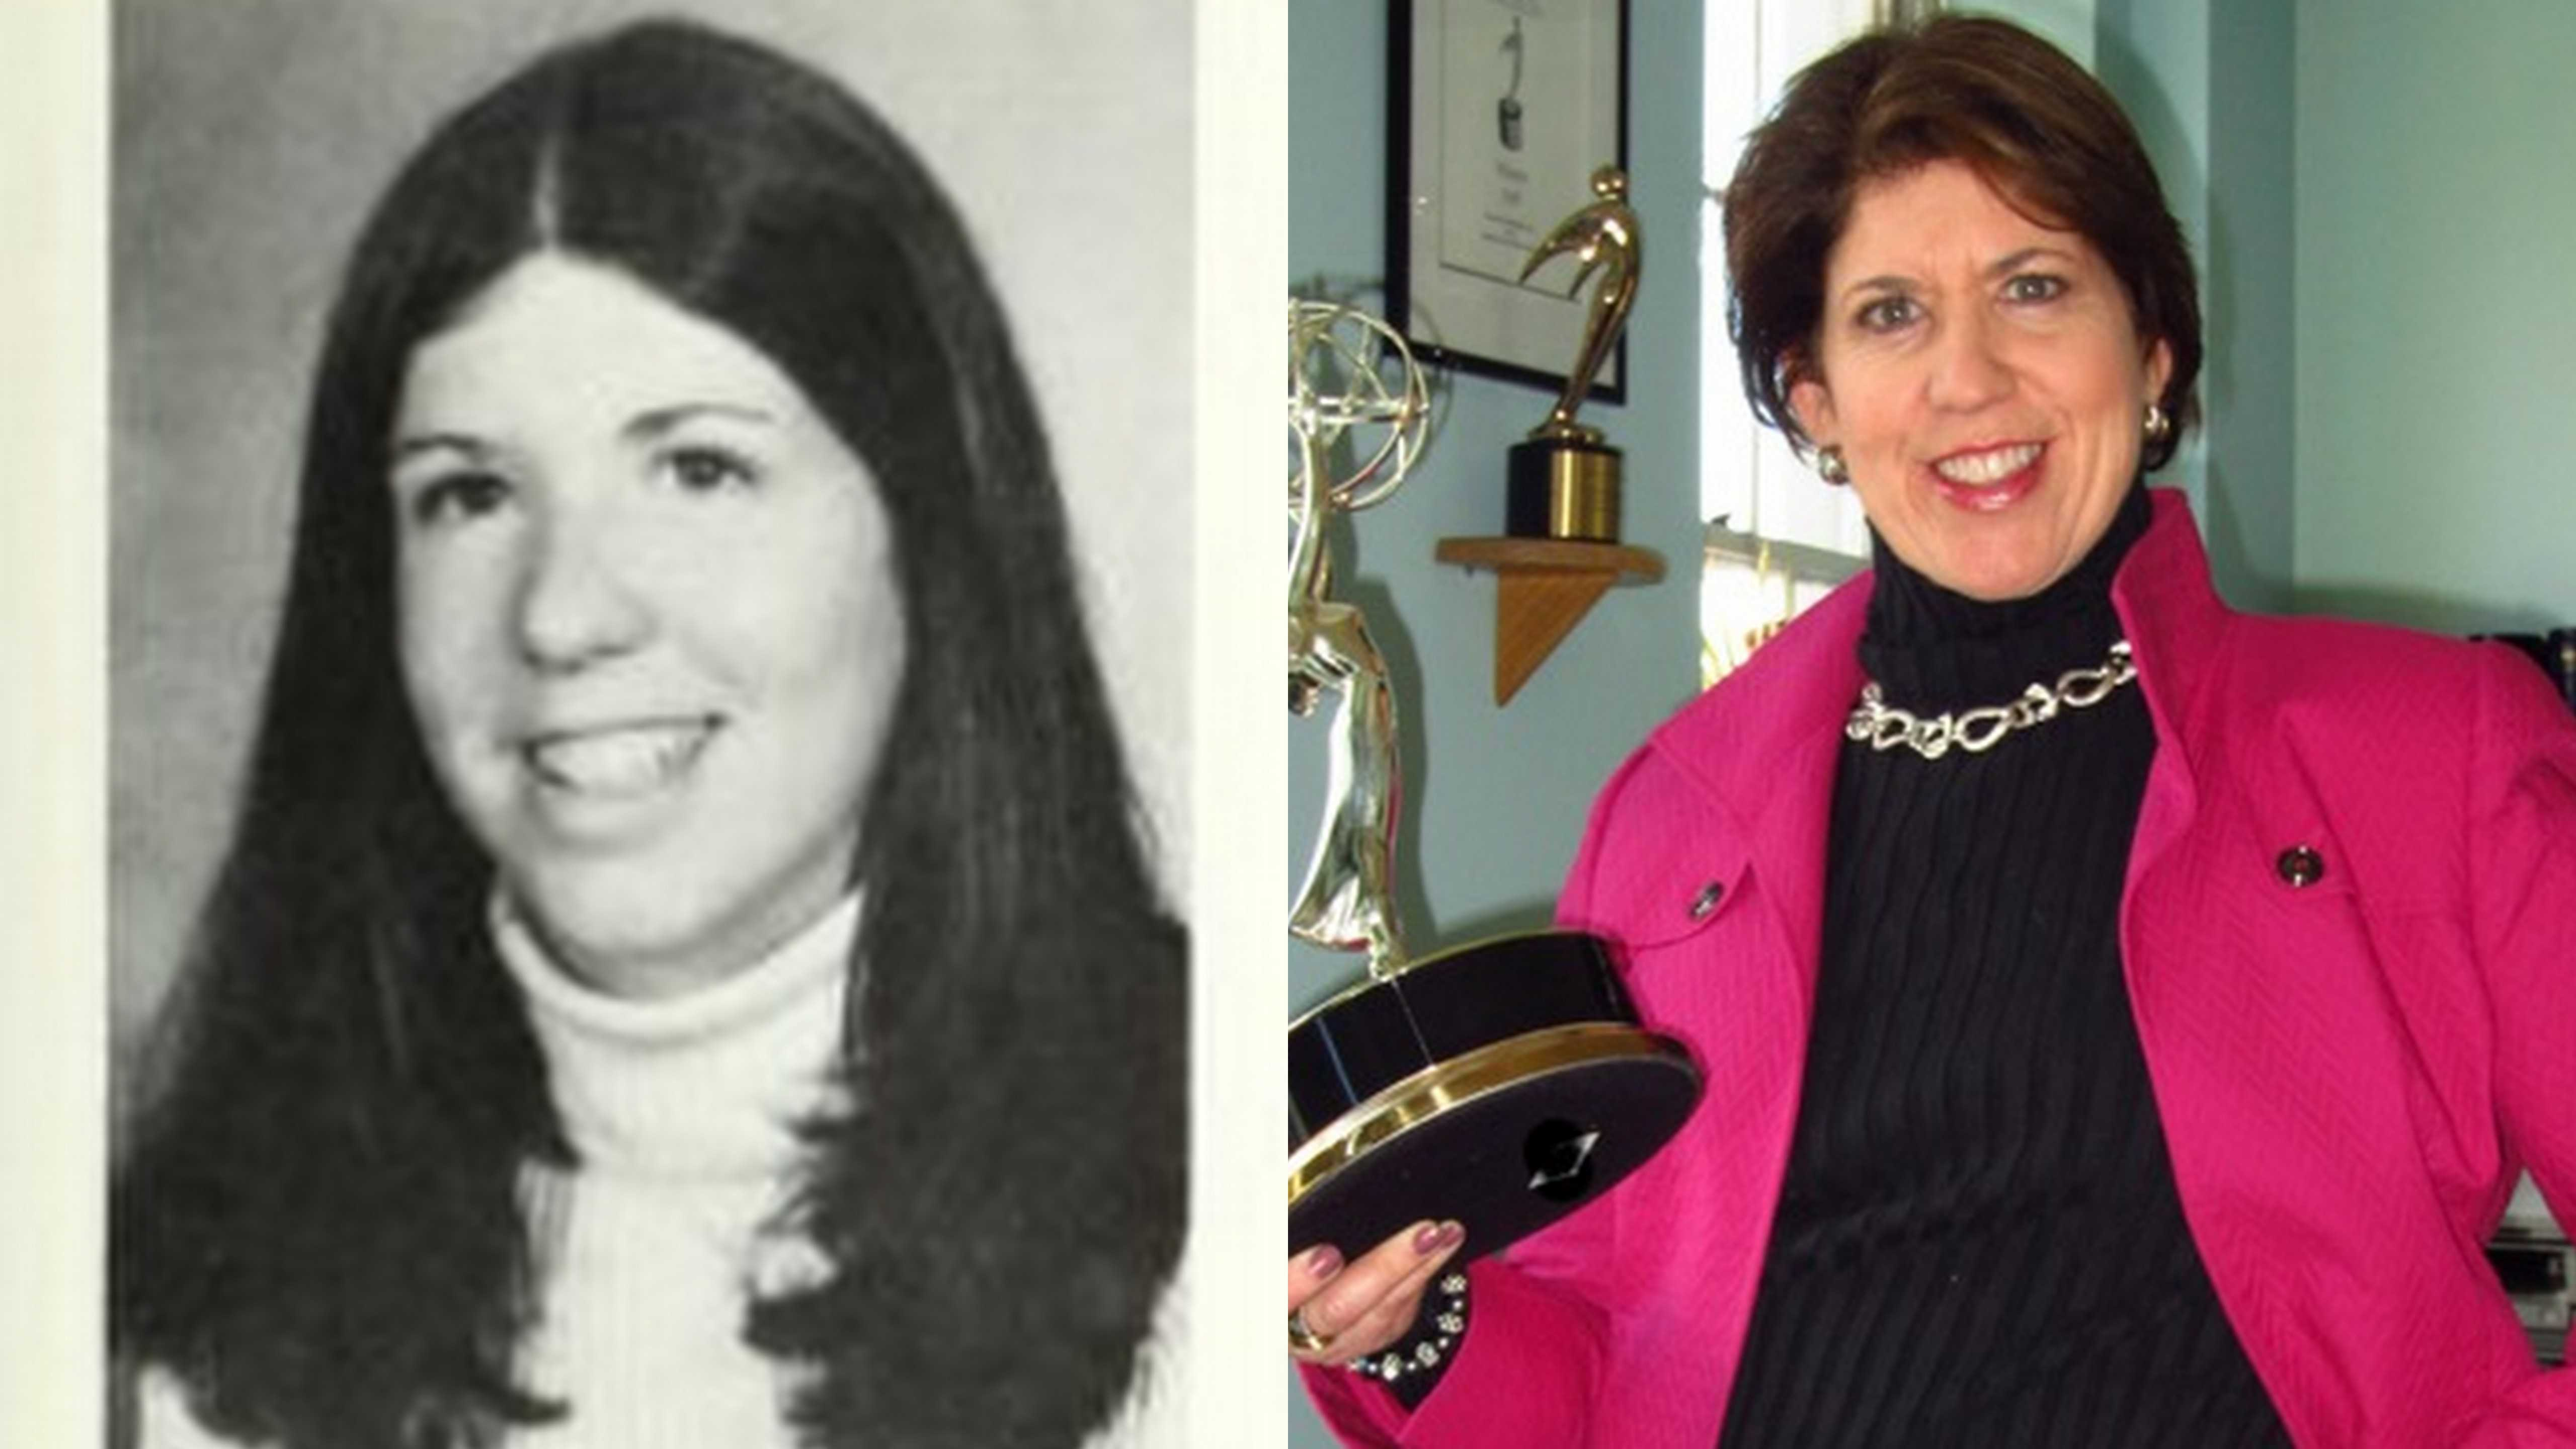 Heidi Berenson '75 then and now. Photos from Murivian '75 (left) and provided by Heidi Berenson (right).